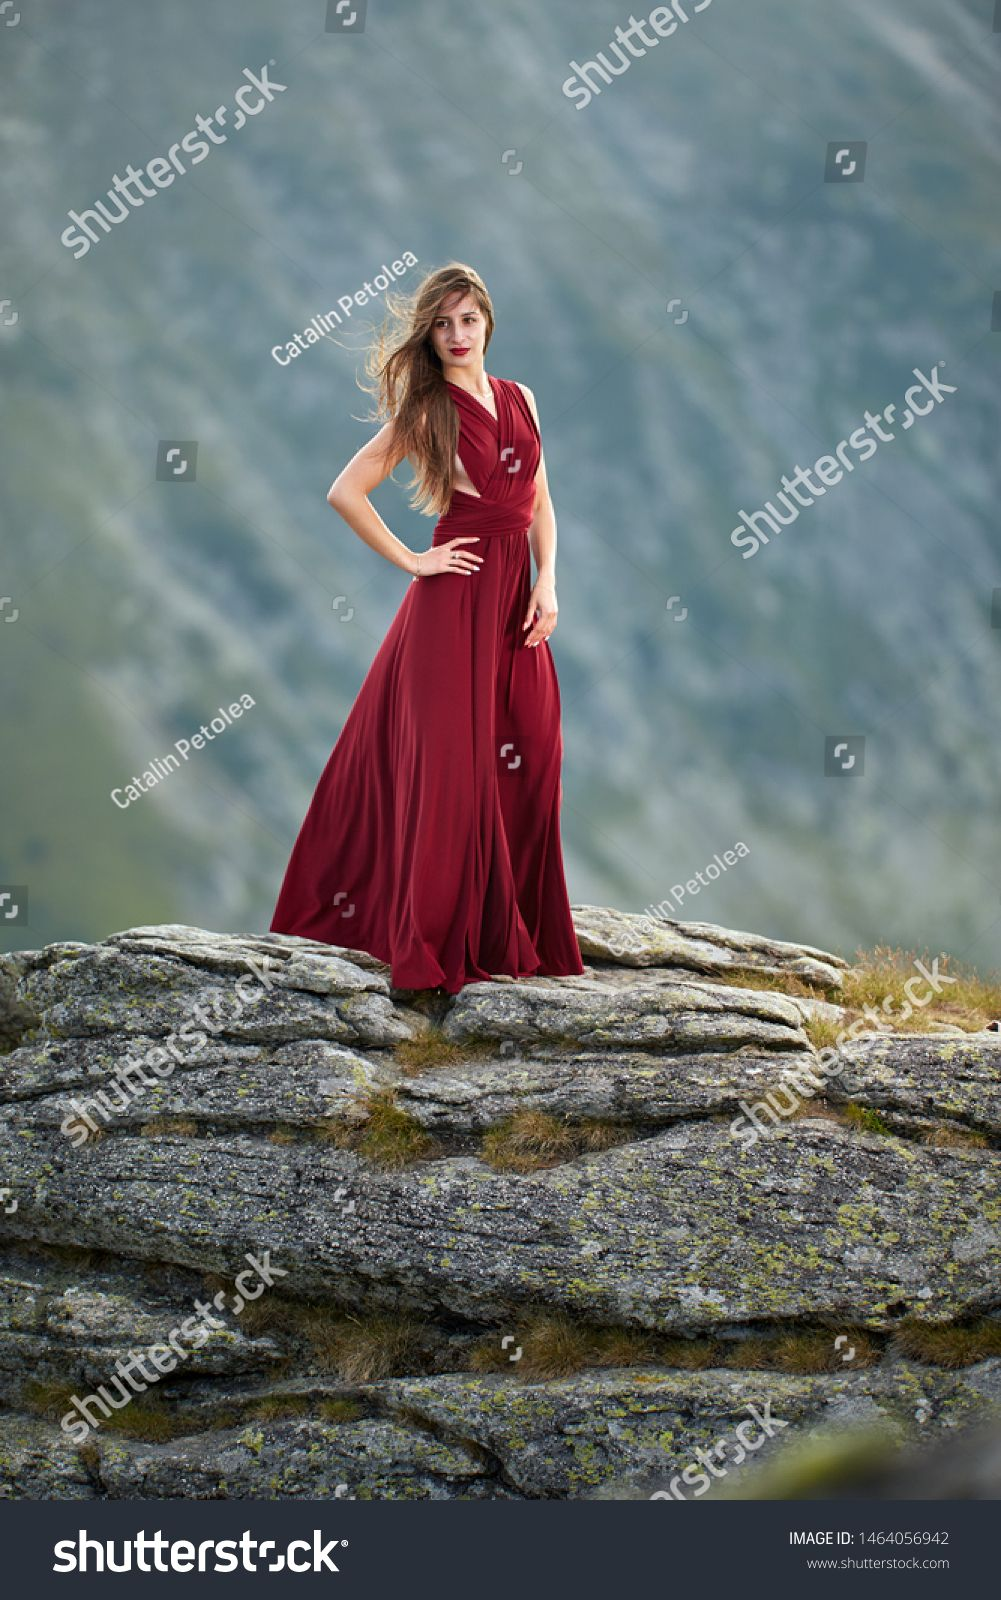 Beautiful female fashion model in red dress on mountain rocks #Sponsored , #sponsored, #fashion#model#Beautiful#female